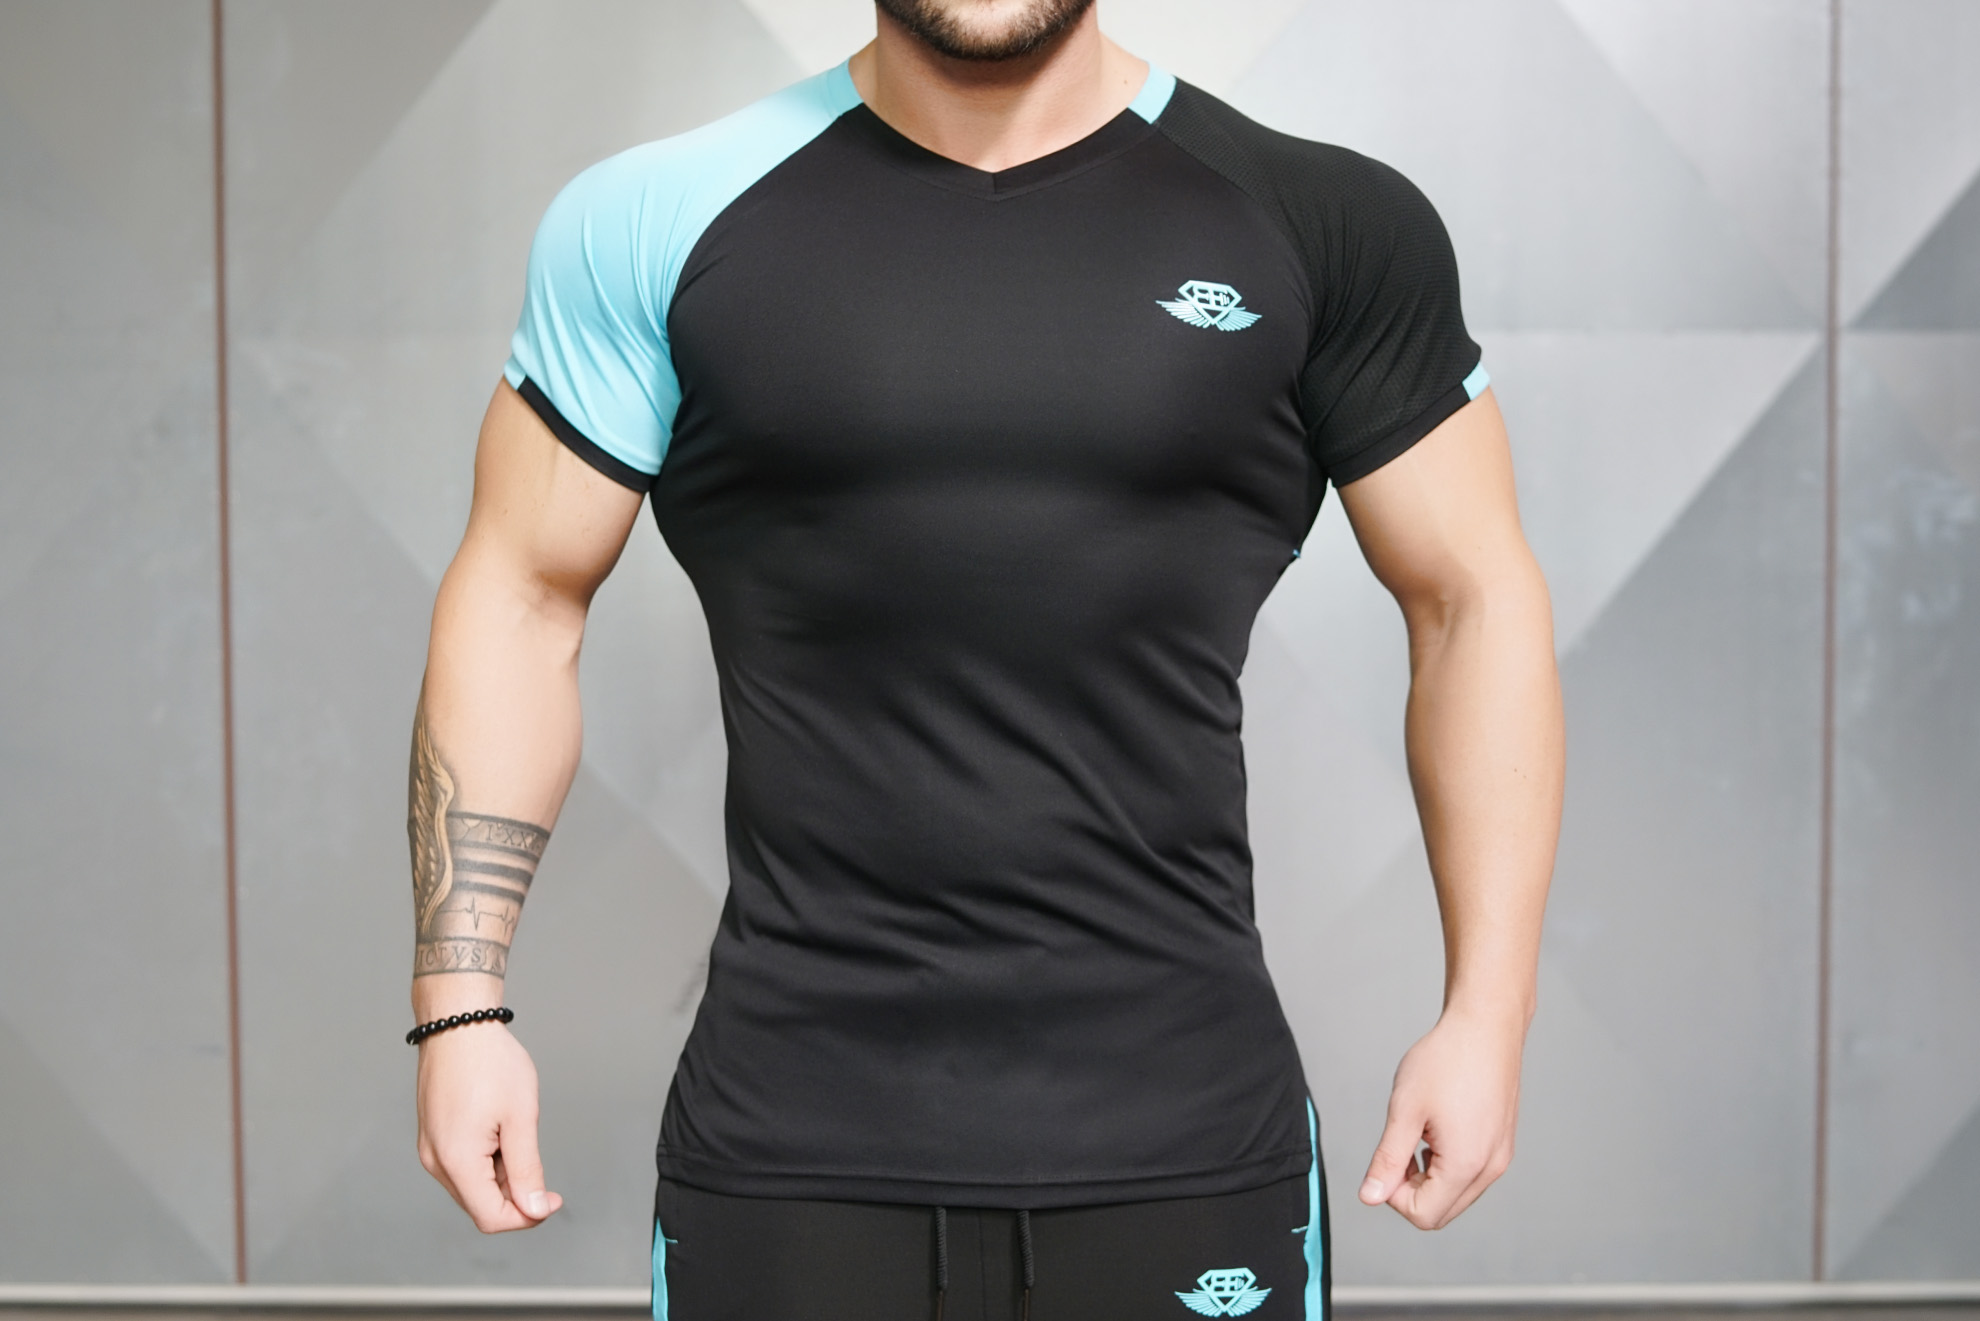 ANAX Performance Shirt - SKY BLUE